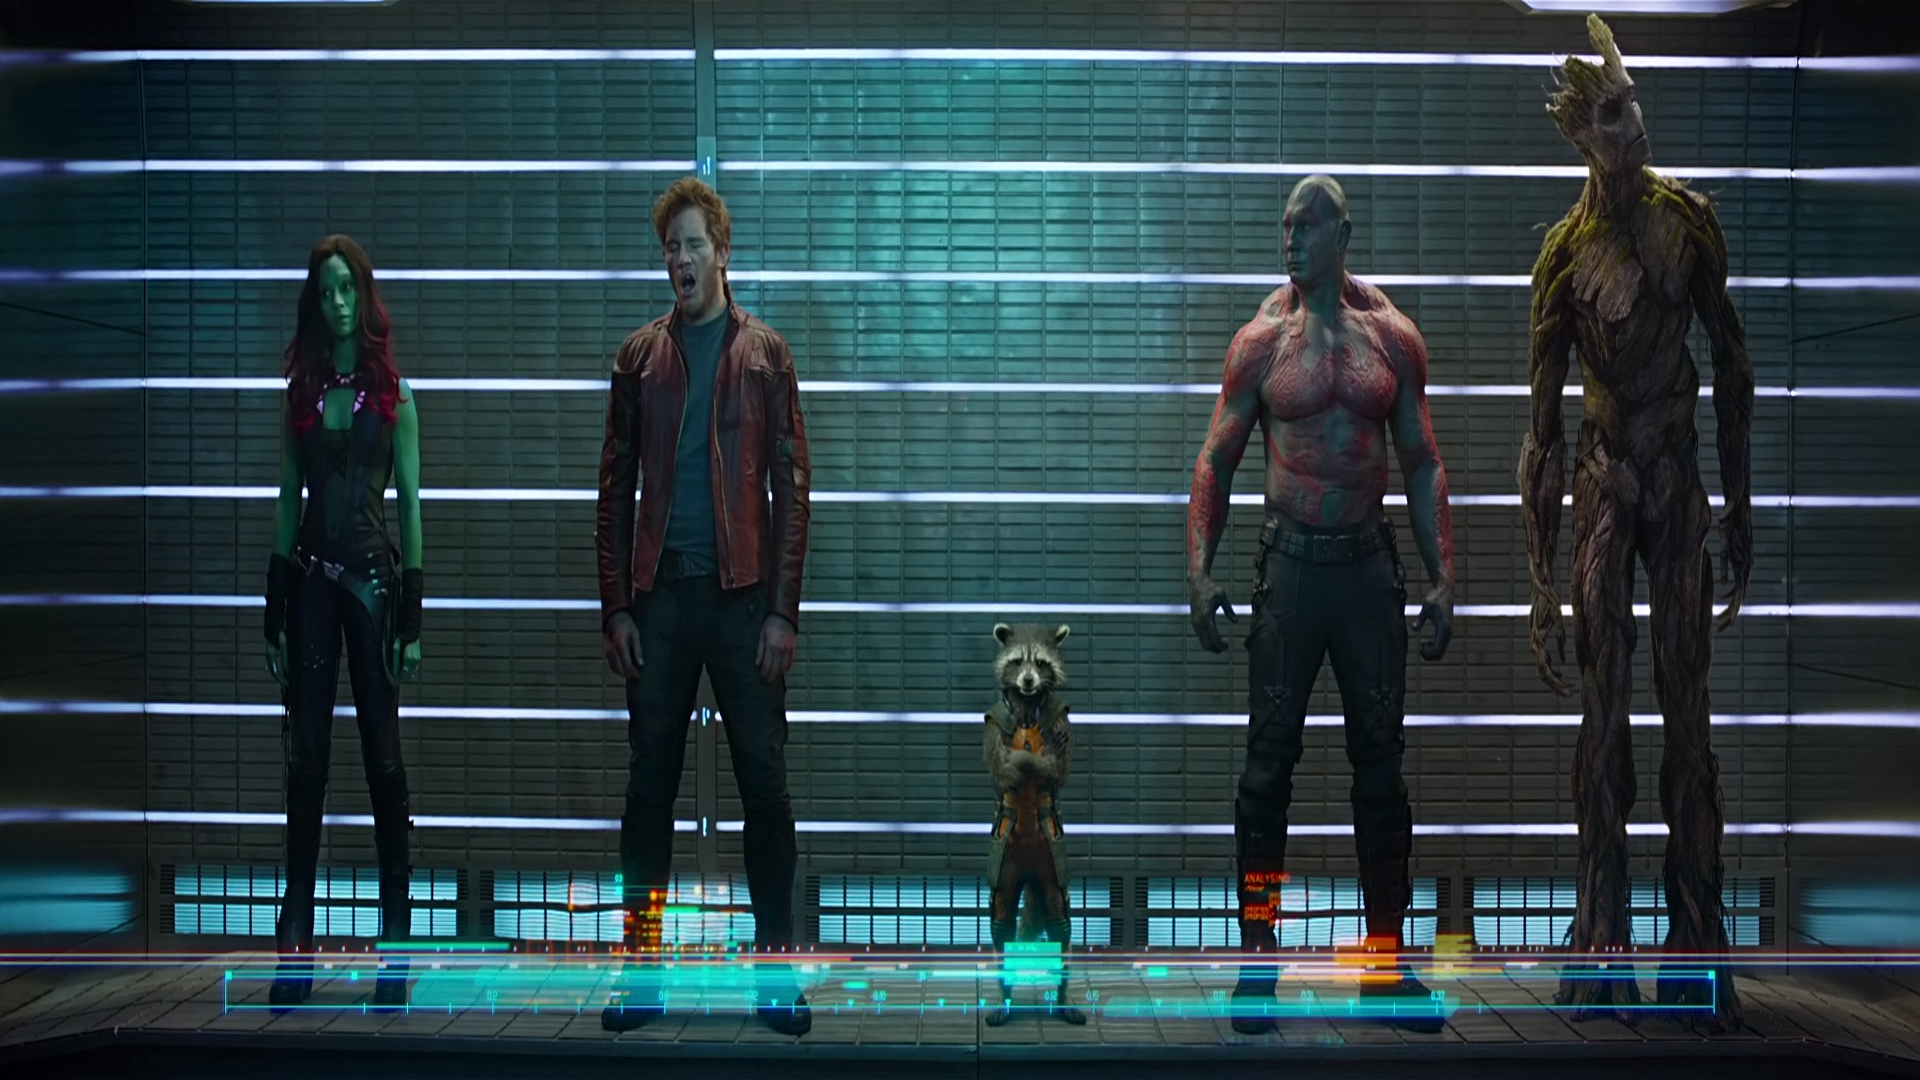 Guardians Of The Galaxy HD Desktop Wallpapers  wallpapers Guardians of the Galaxy HD Wallpapers and Backgrounds 1920x1080